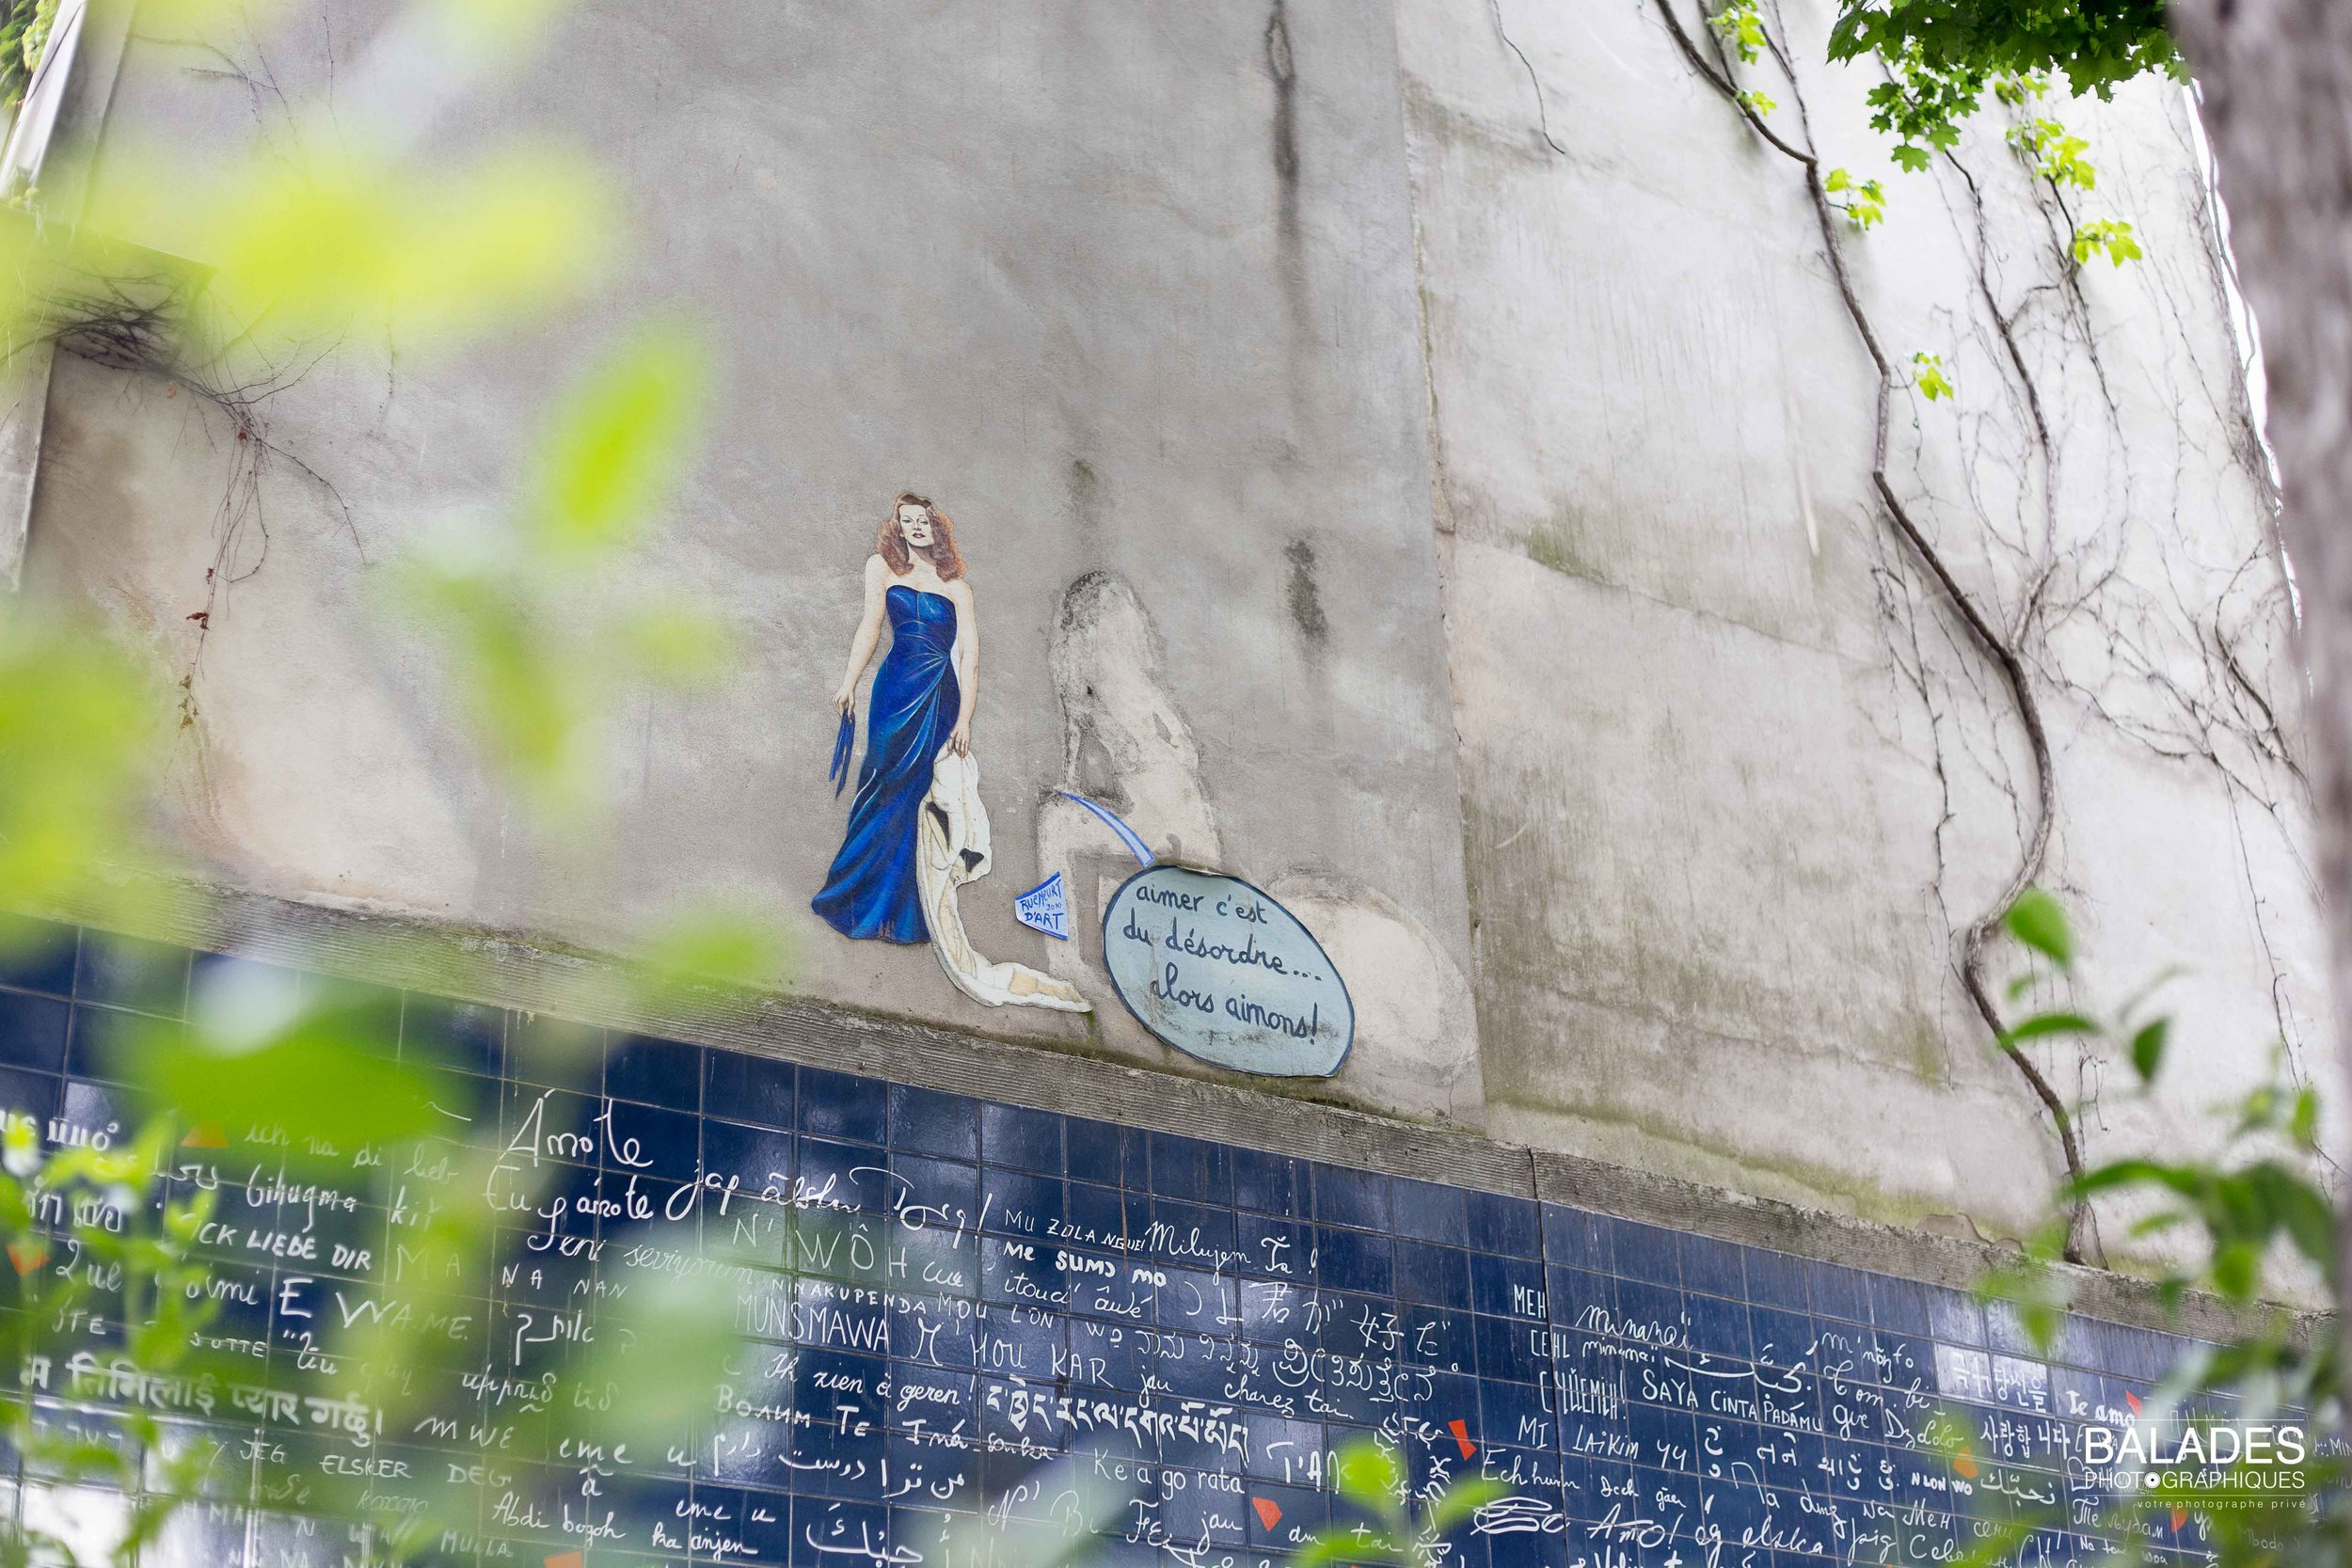 SNAPSHOTS OF MONTMARTRE - 20 JULY